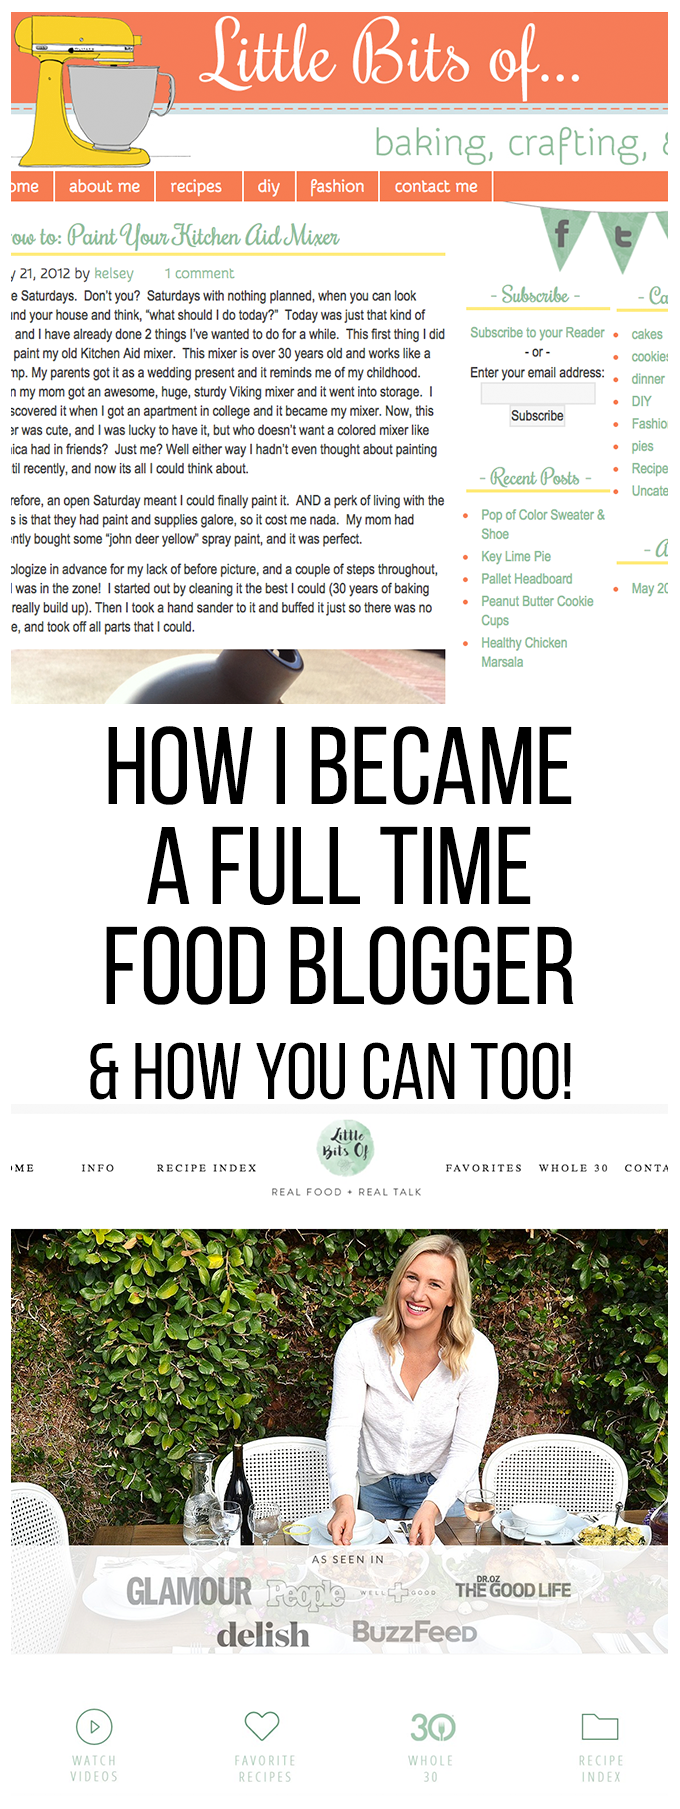 How to become a full time food blogger - my 5 year journey to have the career of my dreams!